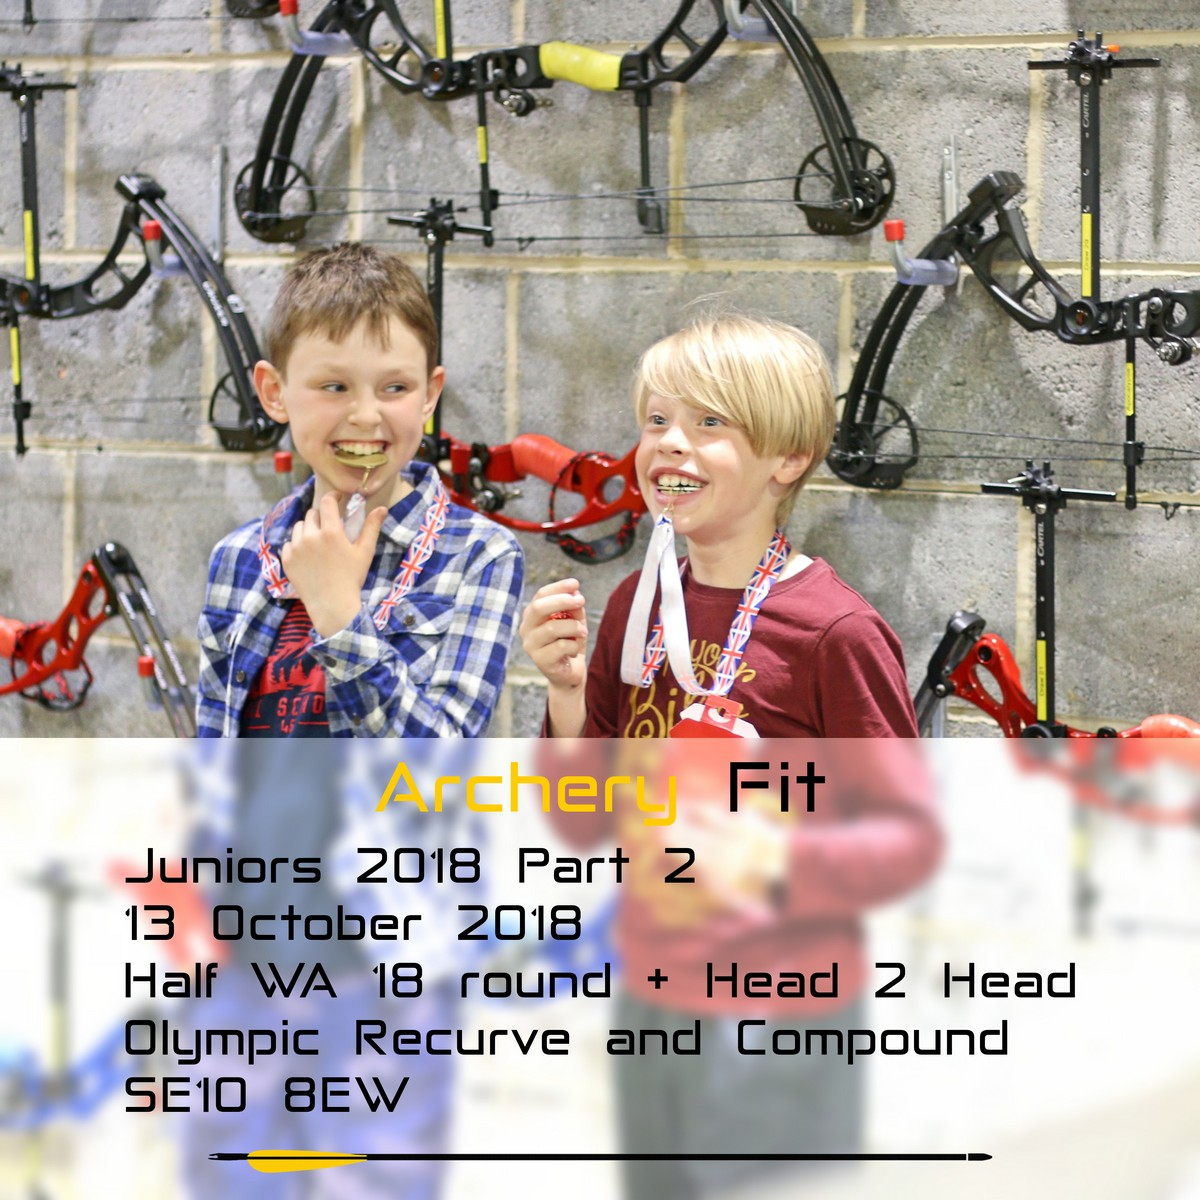 Archery Fit: Juniors 2018 Part 2